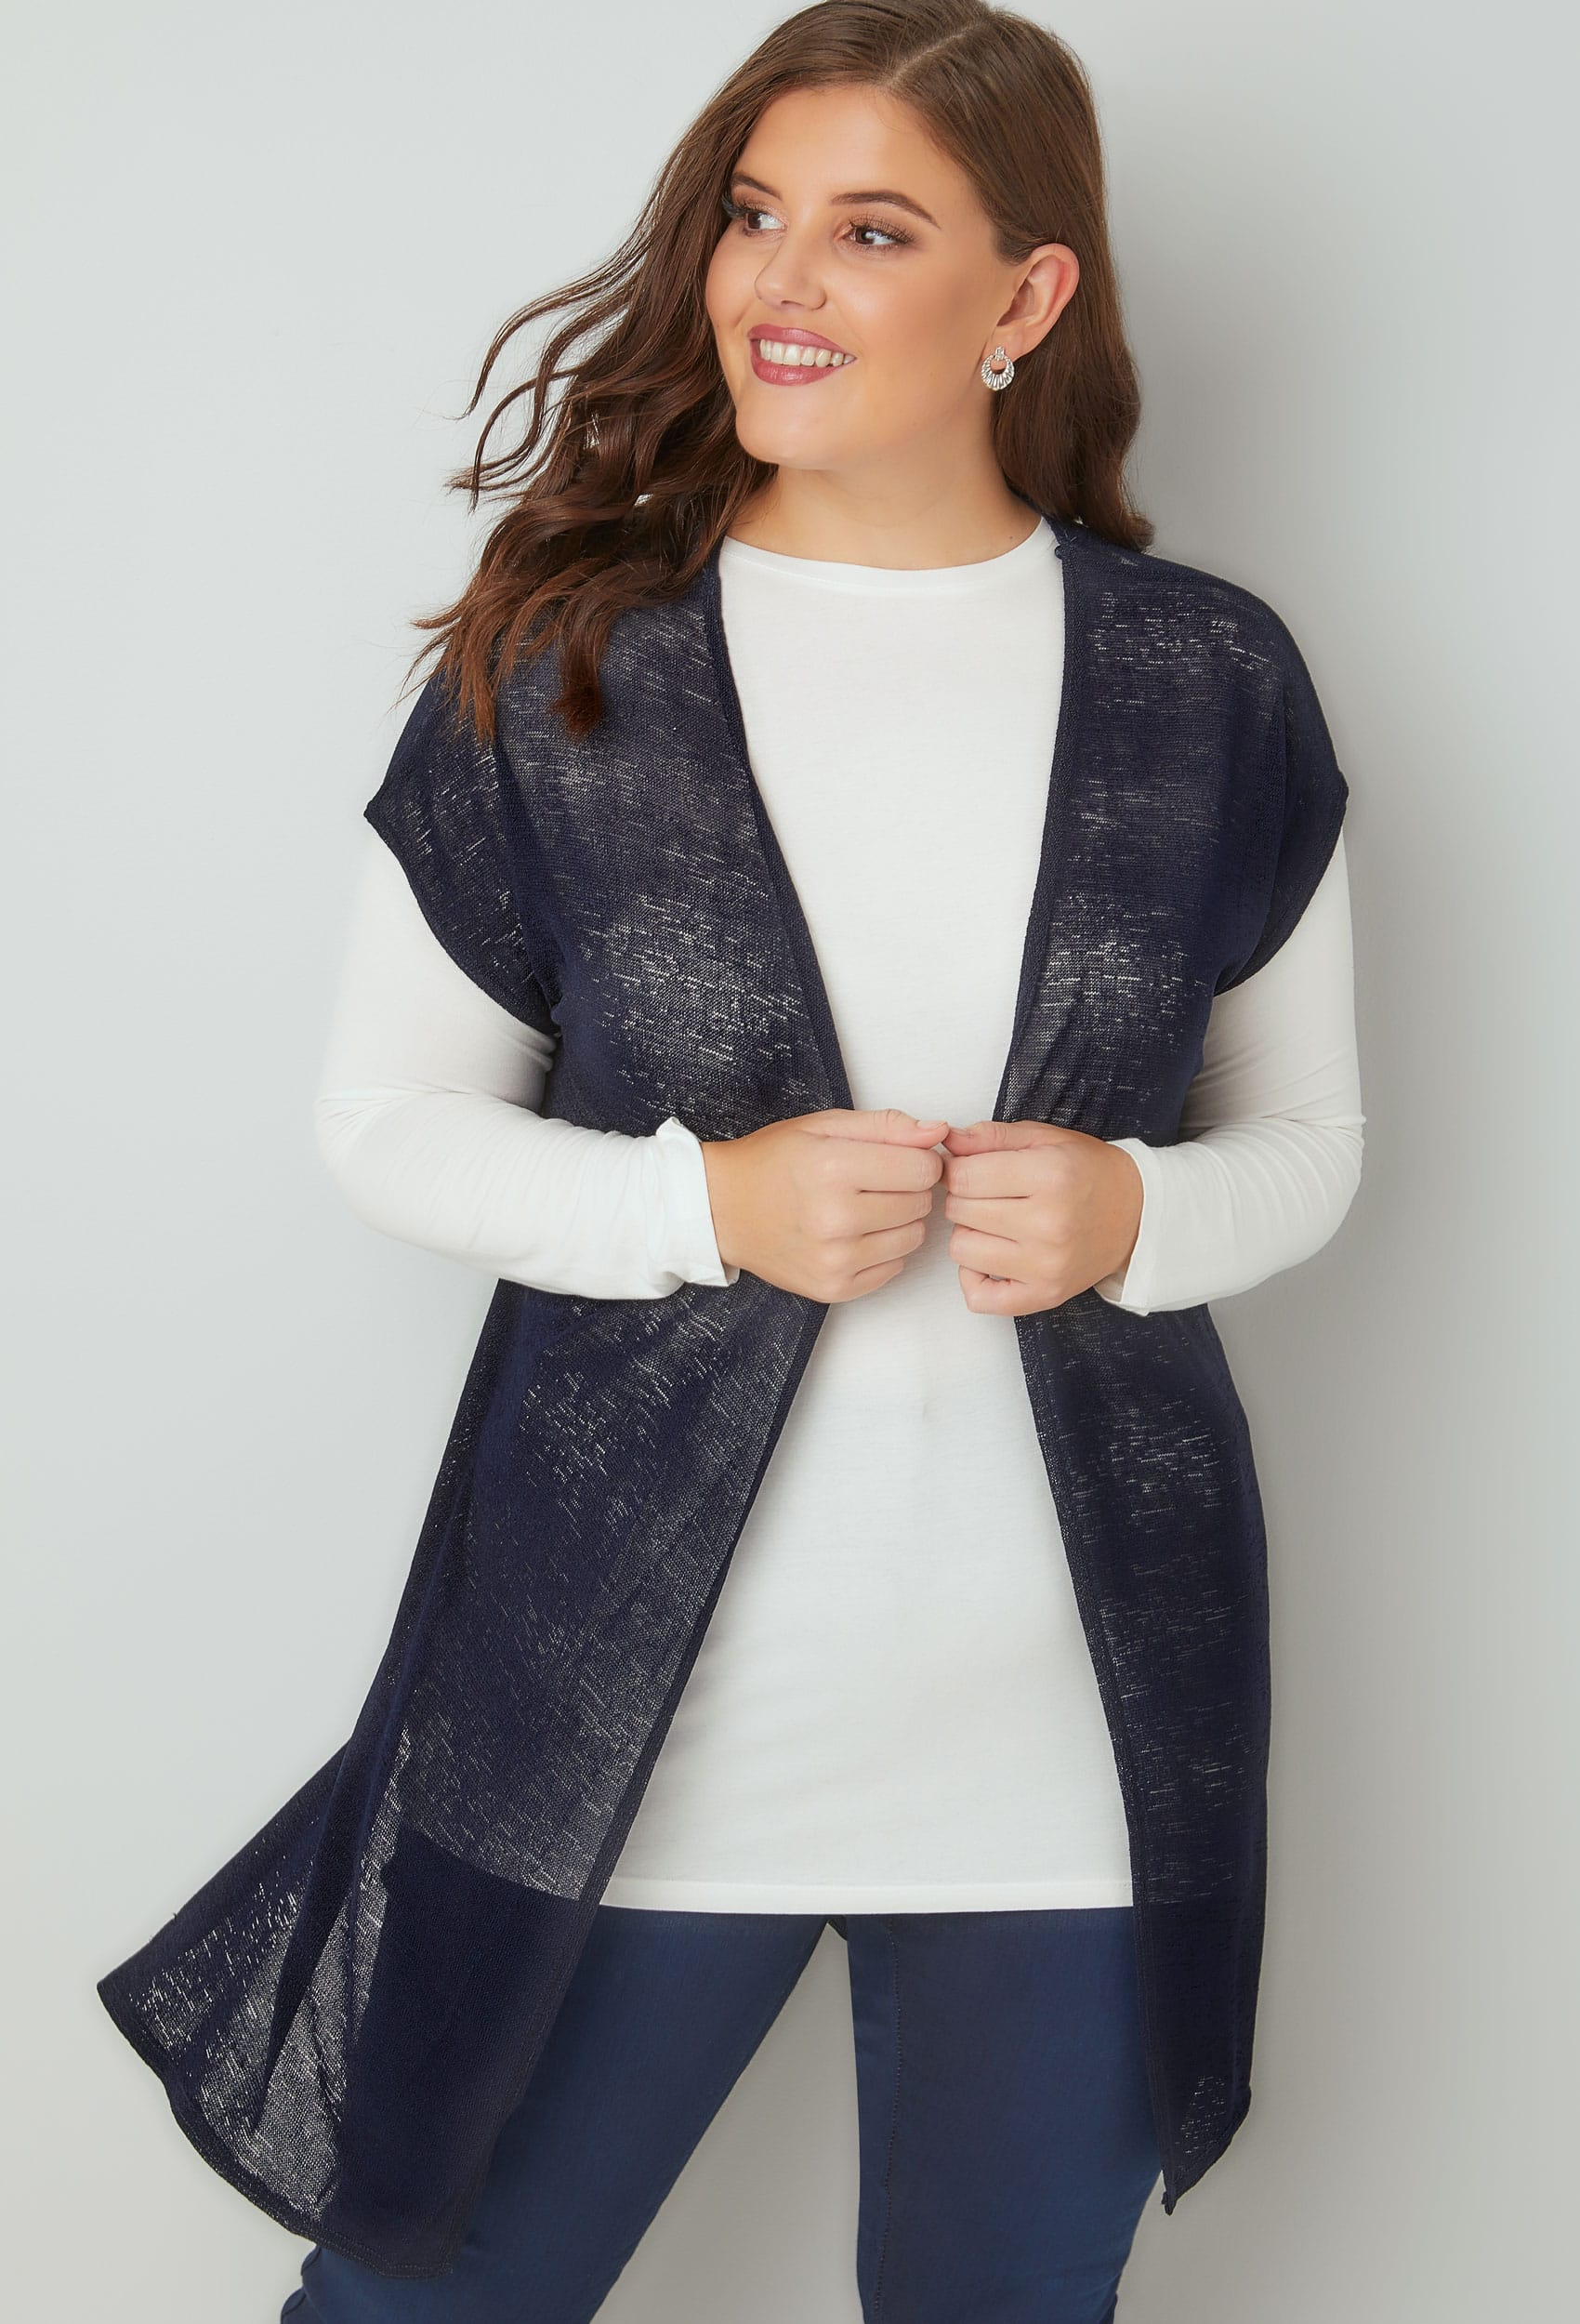 Navy Textured Cardigan With Grown-On Short Sleeves, Plus size 16 to 36